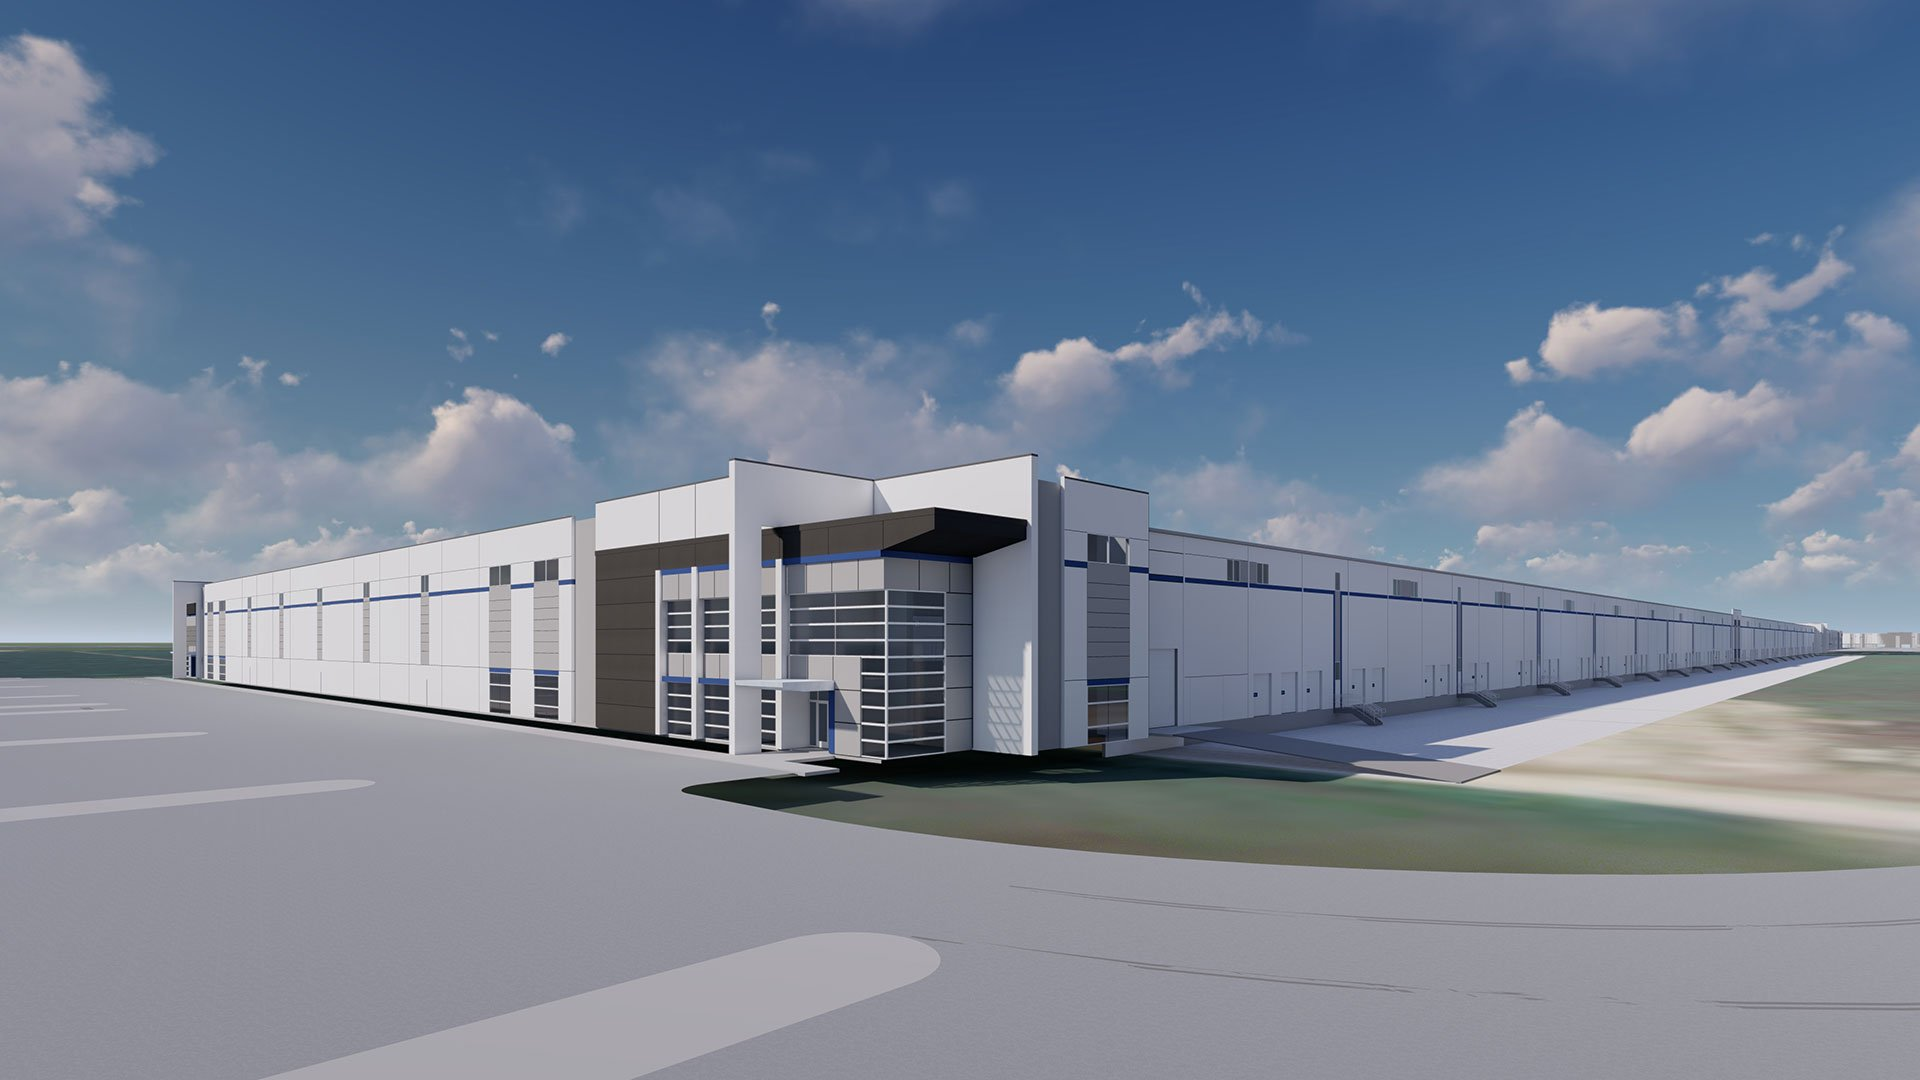 CTC Tract 1A, Spec Industrial Rendering